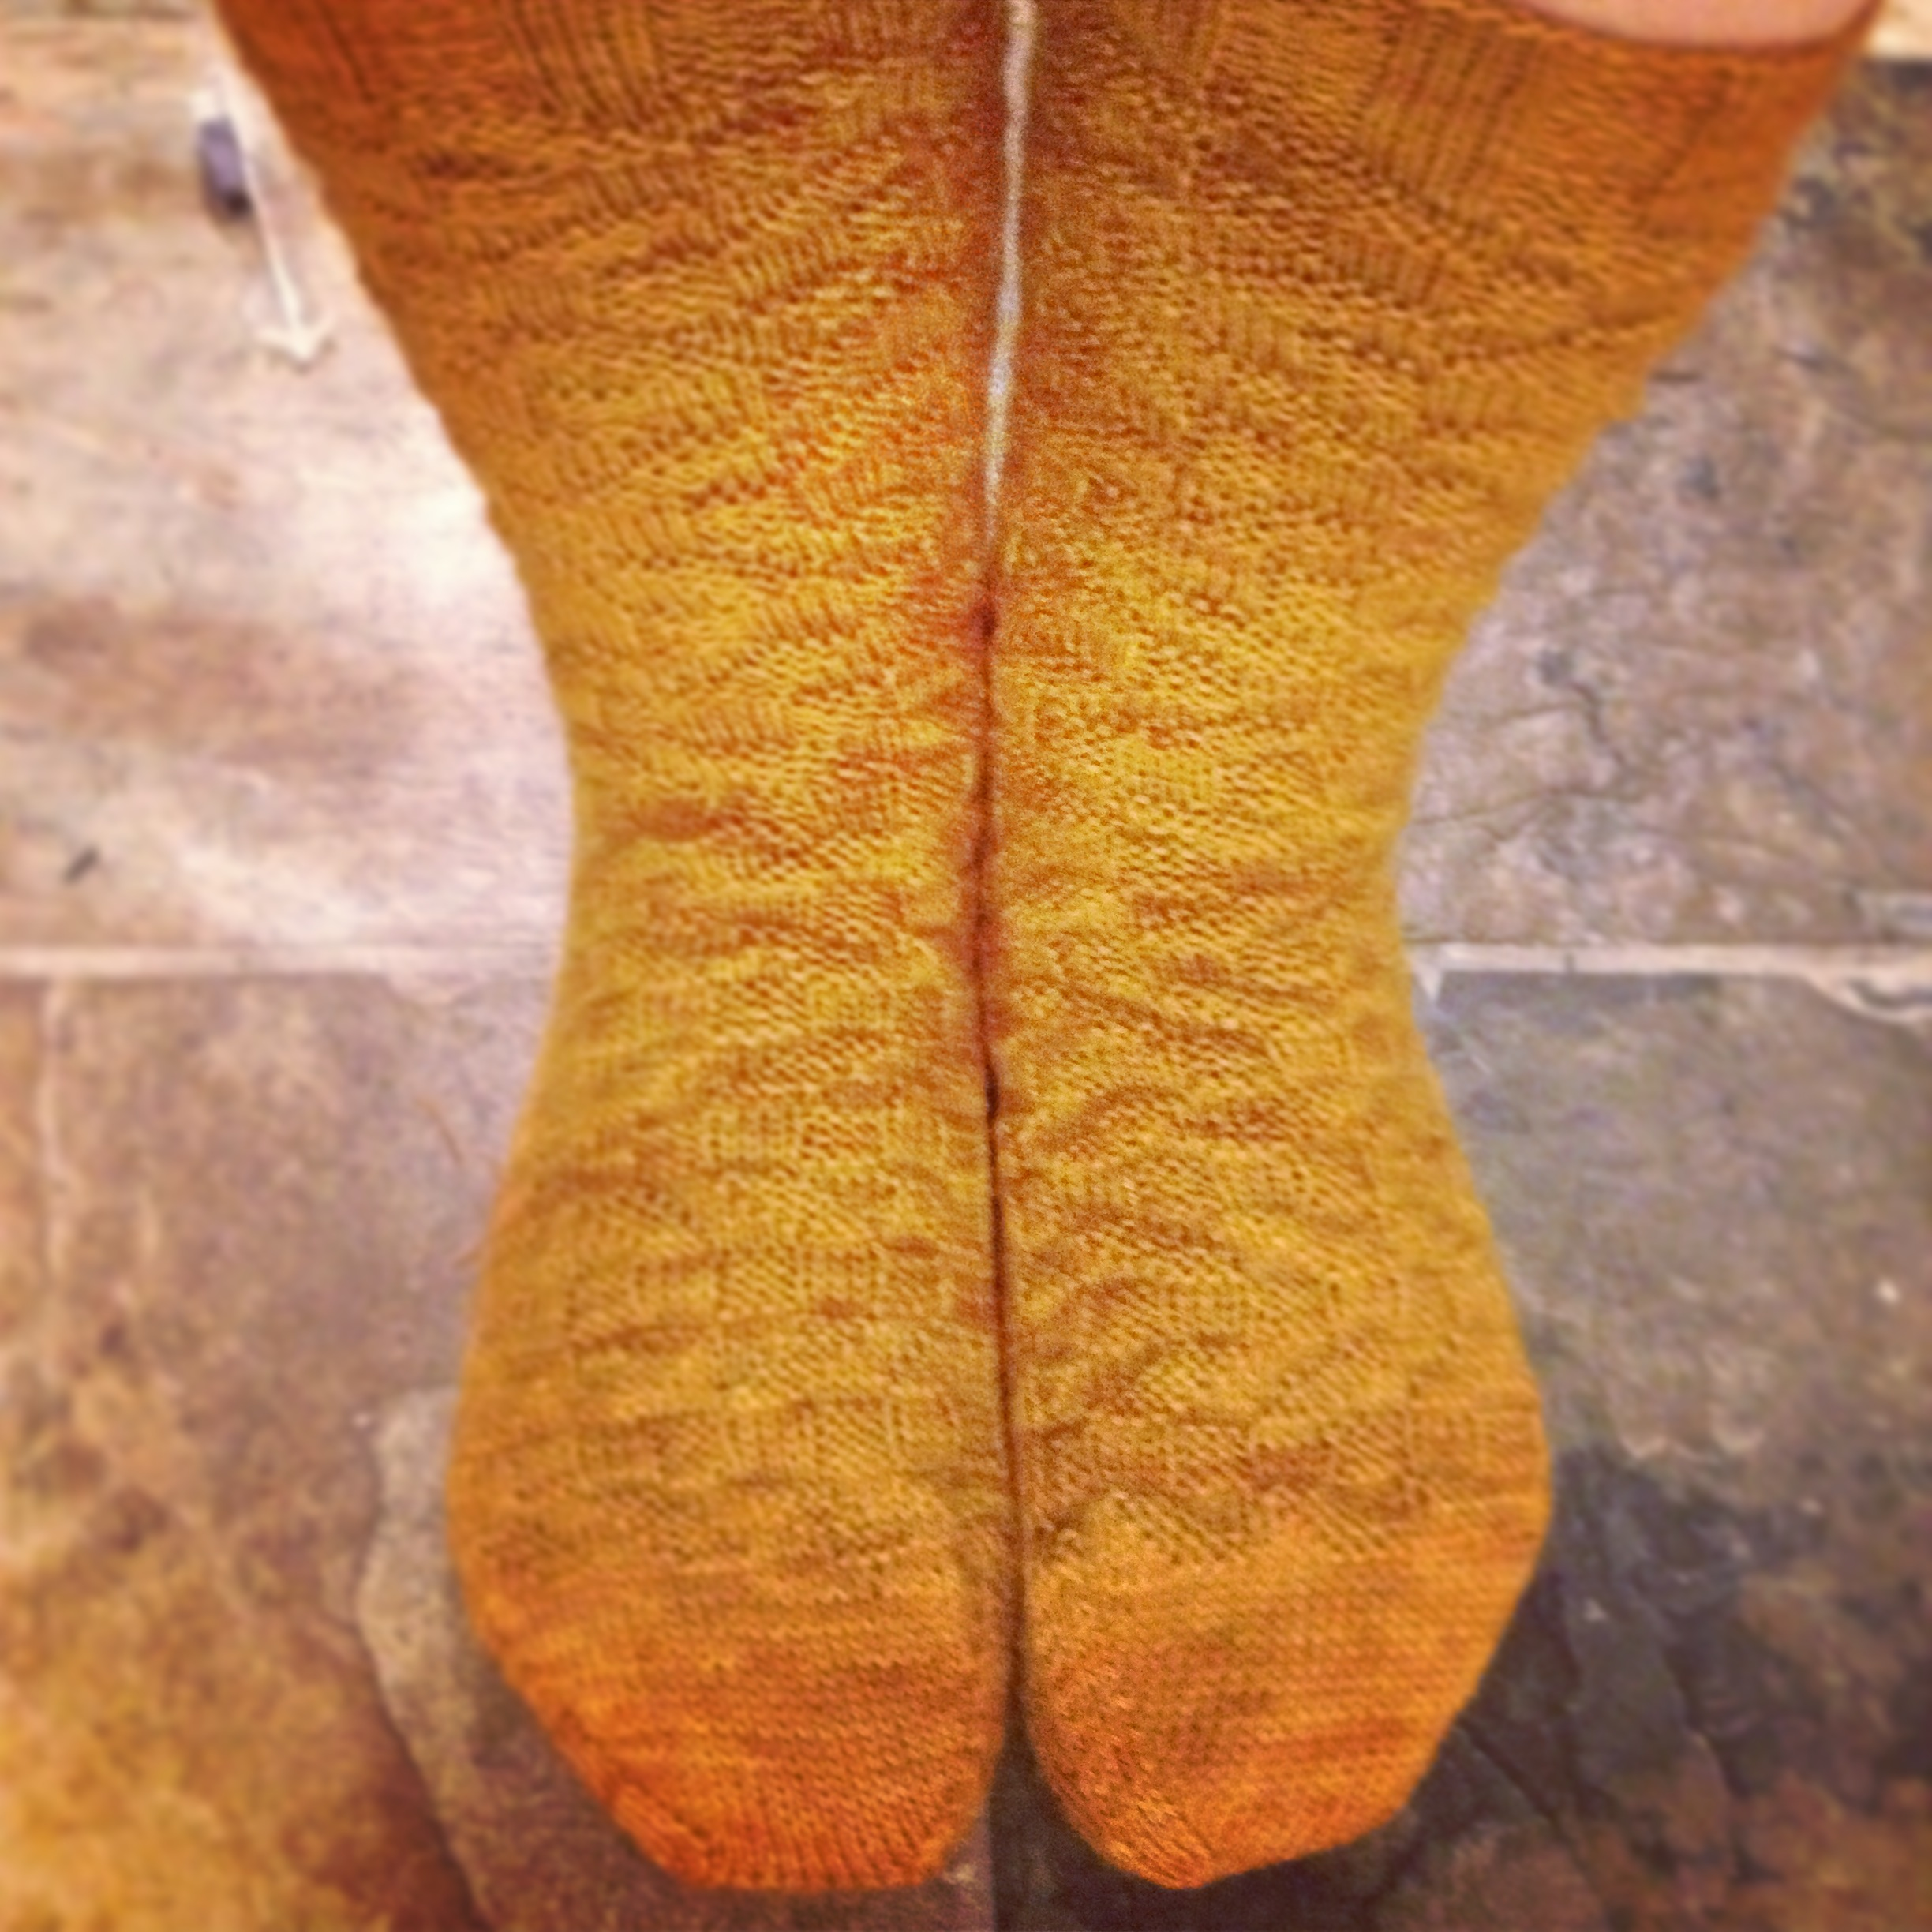 Squadron Socks by ME! in Kilcoursie Fingering, Almost Lichen (the skein that inspired the Lichen colorway)